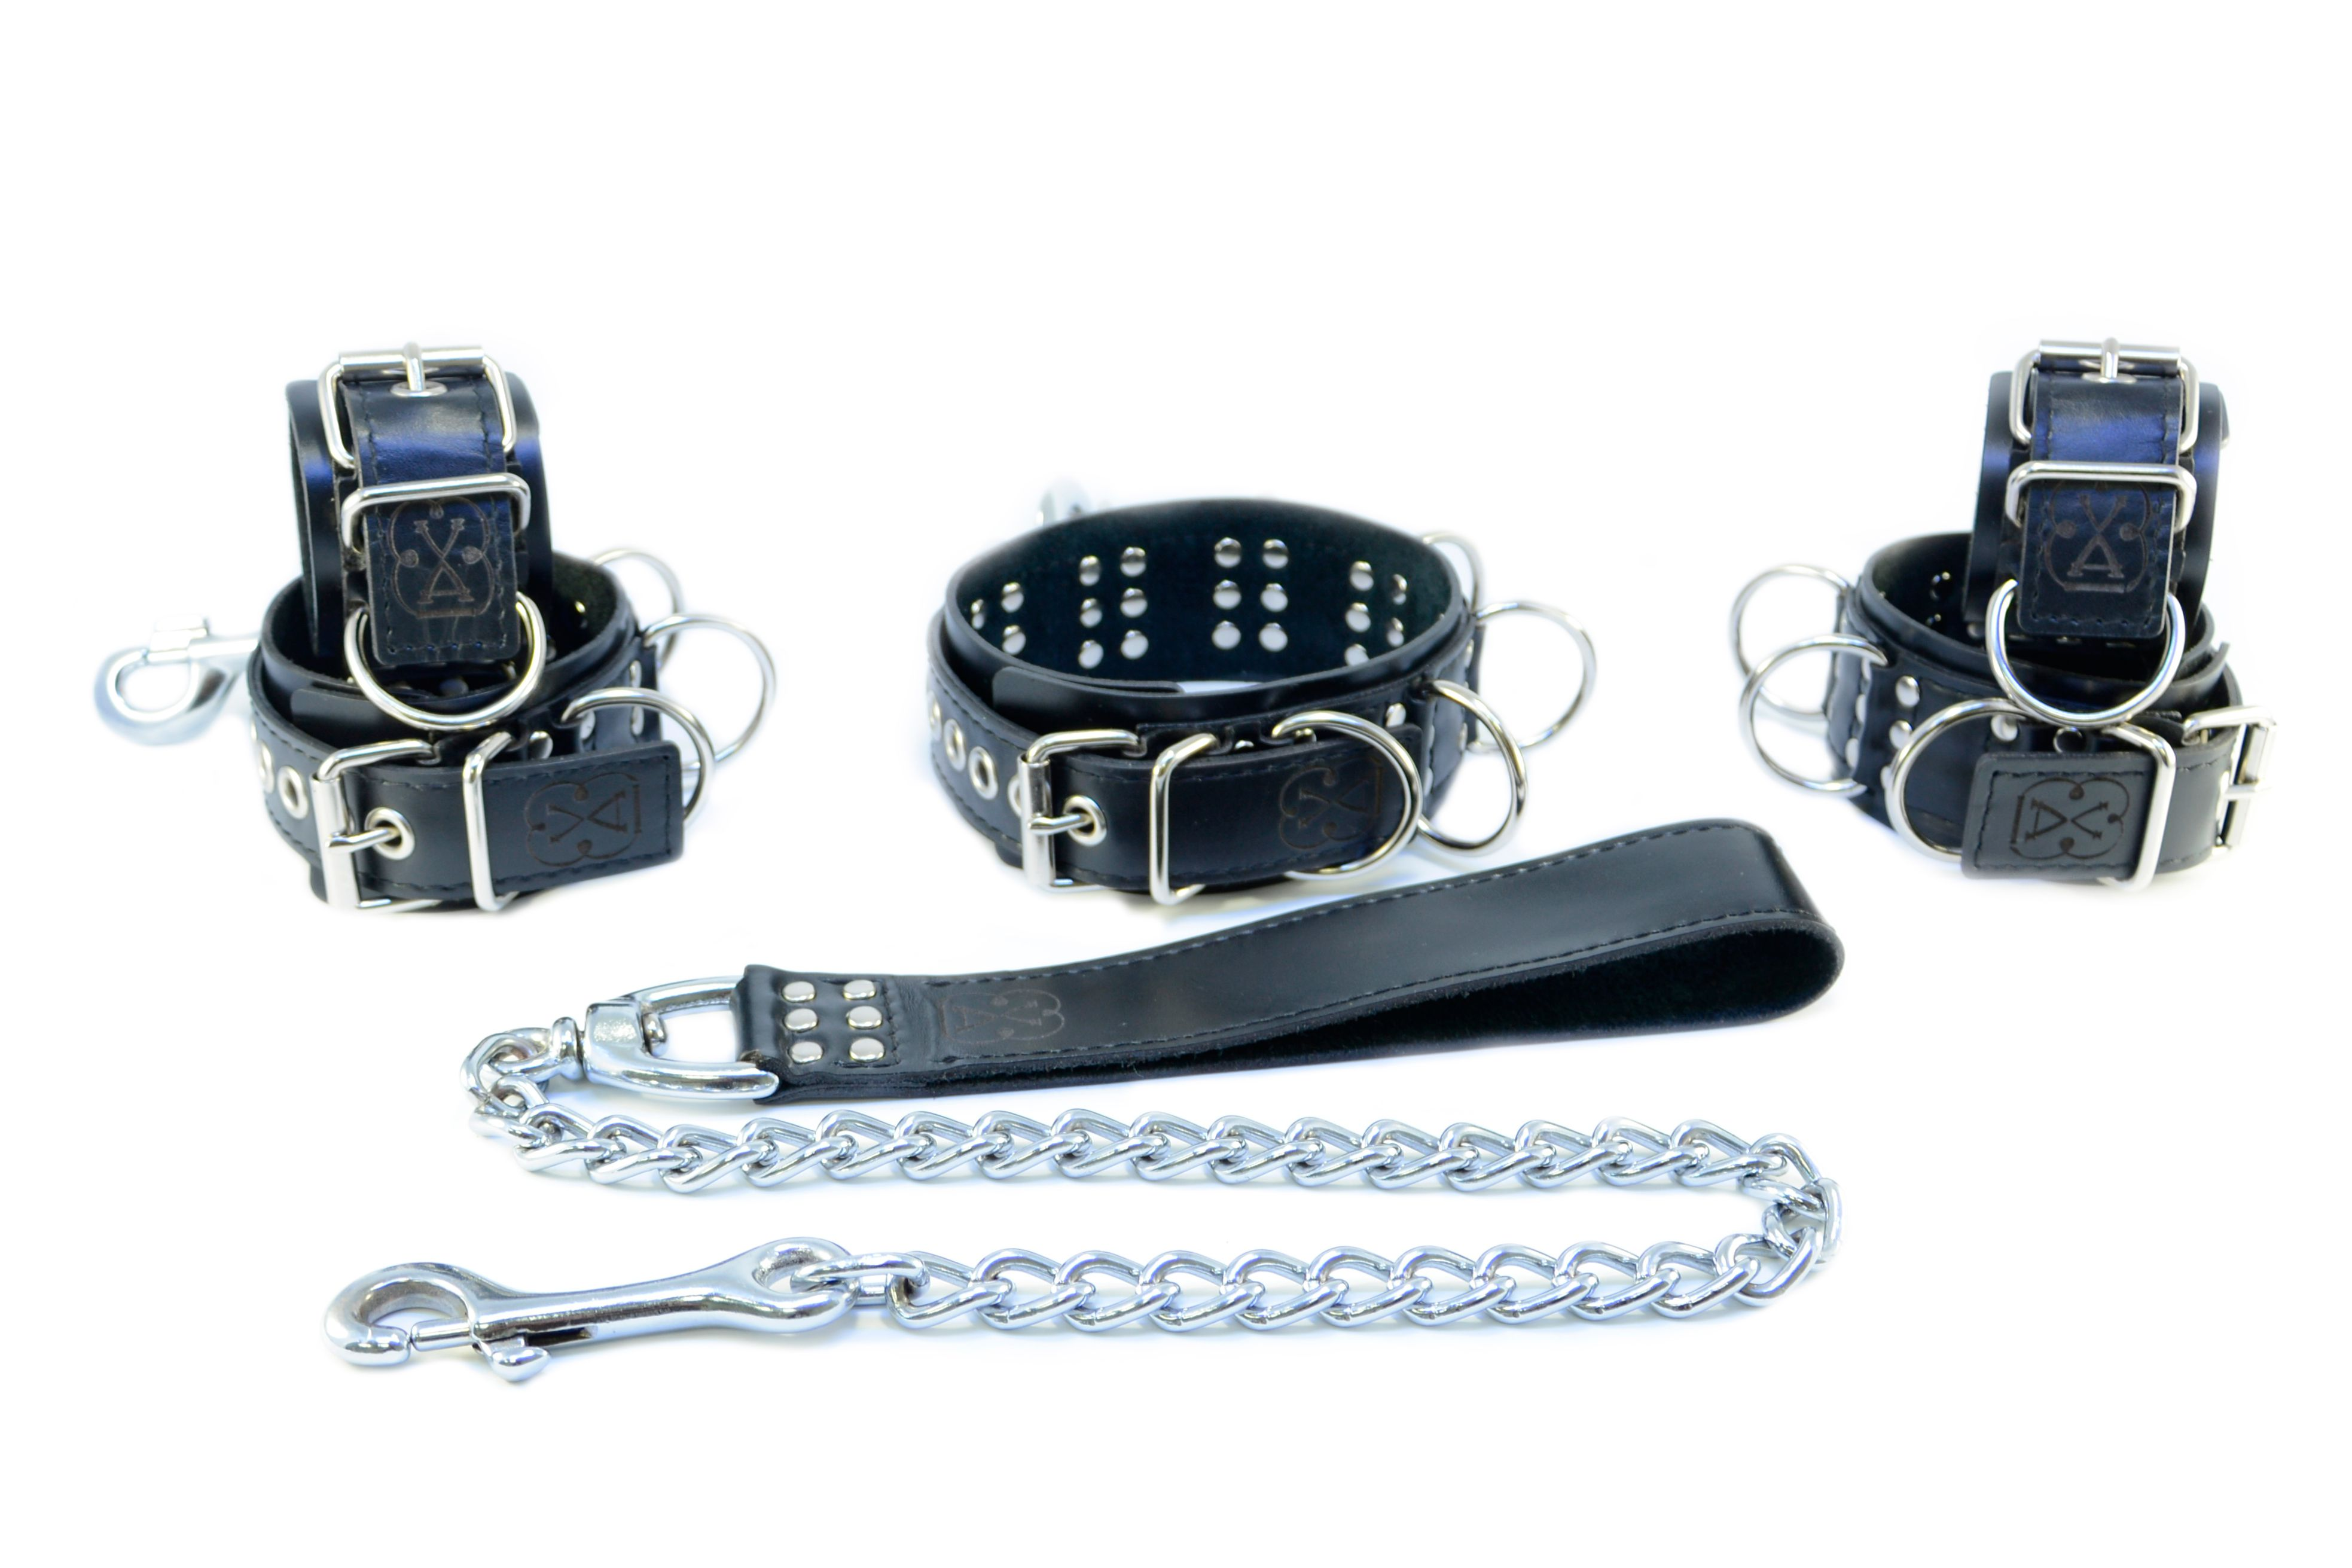 leather cotton submussion wood steel kink masters devices for